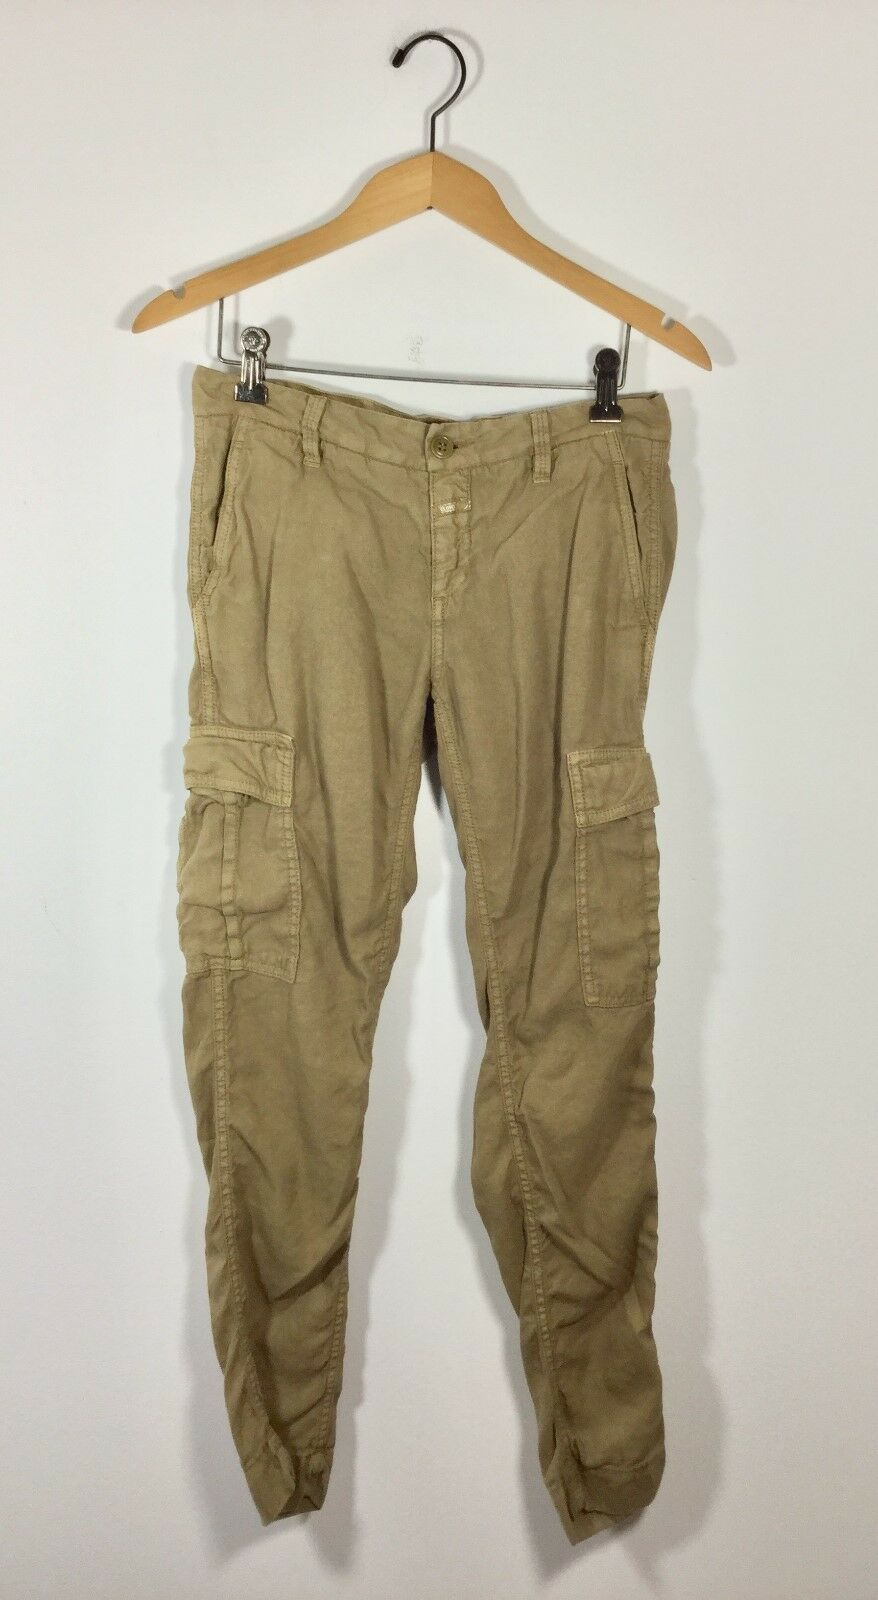 CLOSED Khaki Skinny Leg Cargo Linen Cotton Pant Size 40